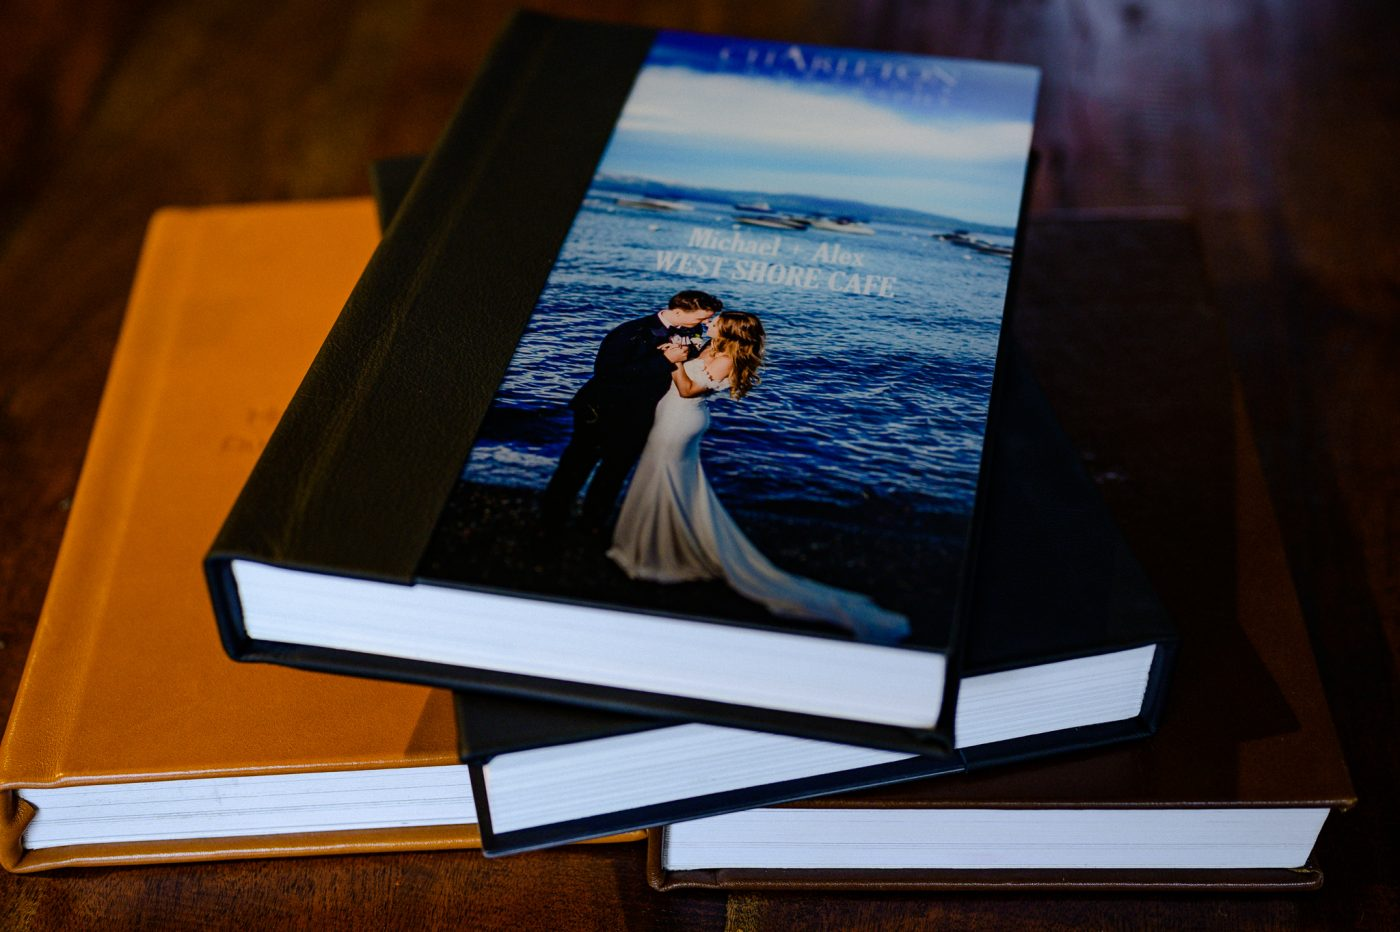 wedding album leather and acrylic for the West Shore Cafe photographer, charleton churchill